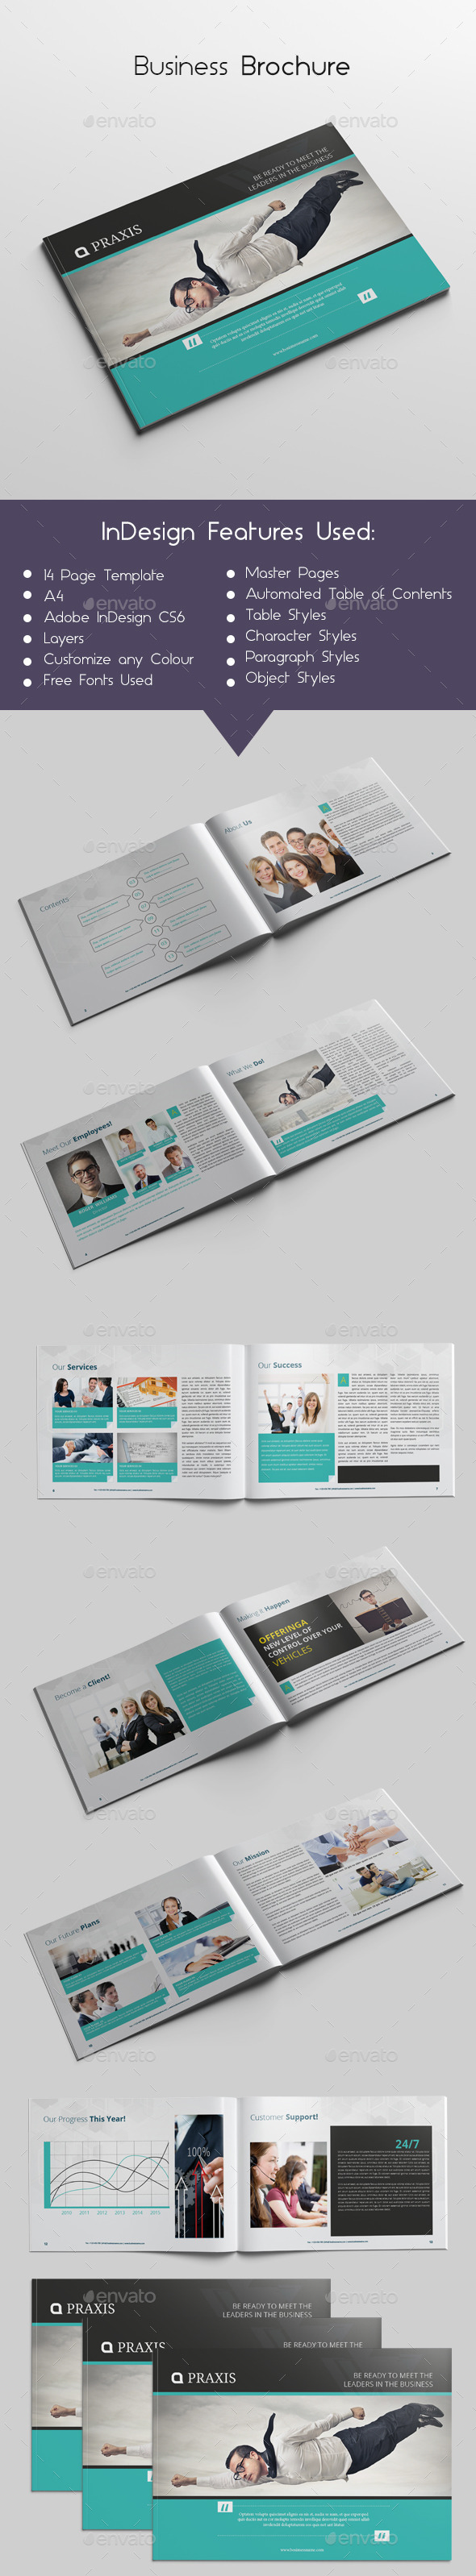 GraphicRiver Business Brochure 10028243